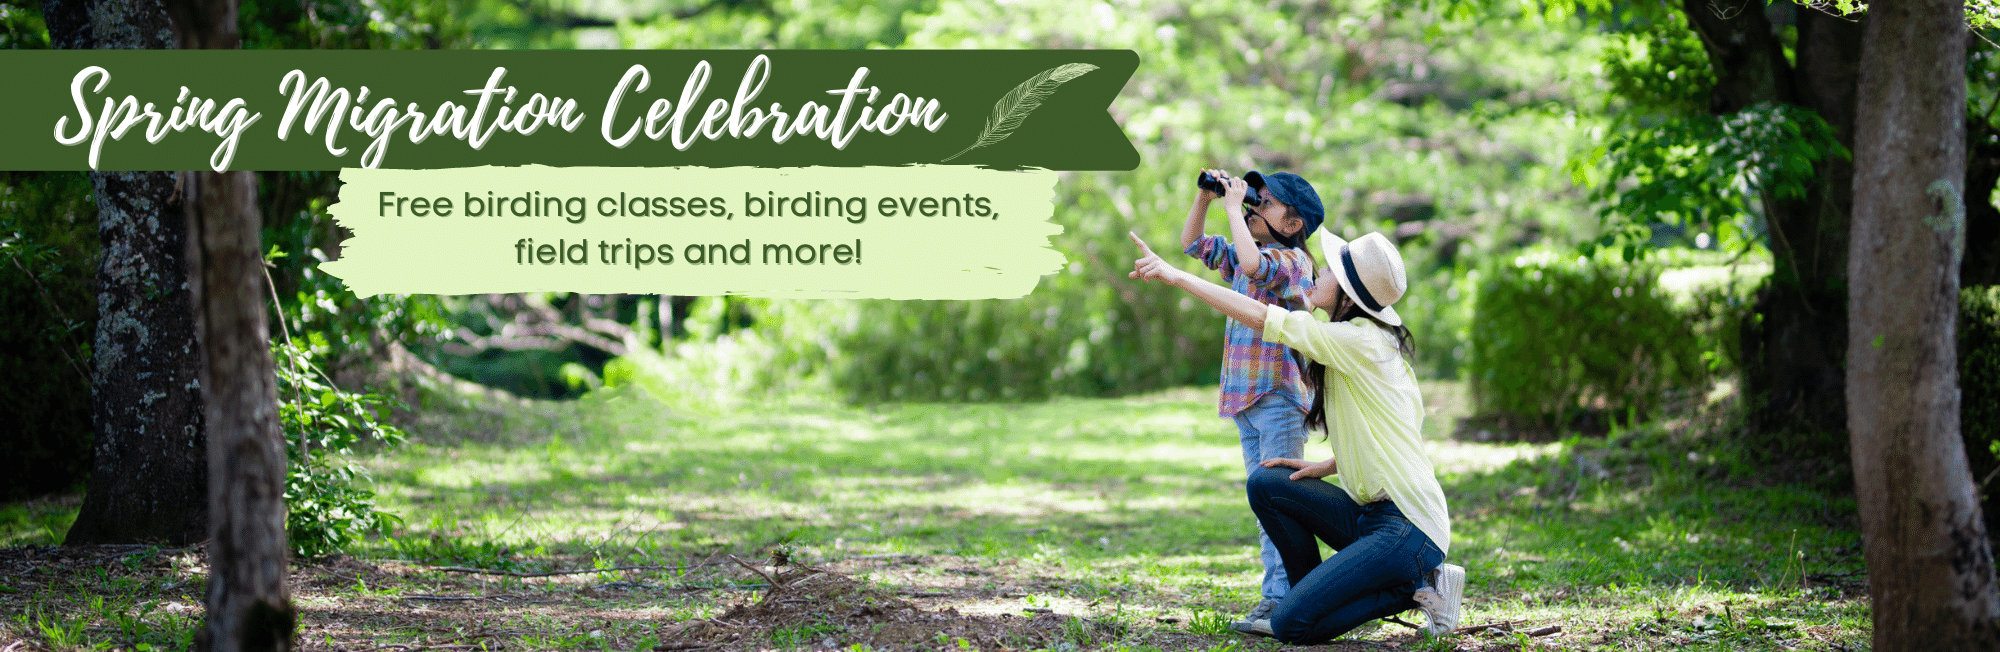 Explore classes, events, and exclusive hotel packages to experience this annual event on the Great Texas Coastal Birding Trail.